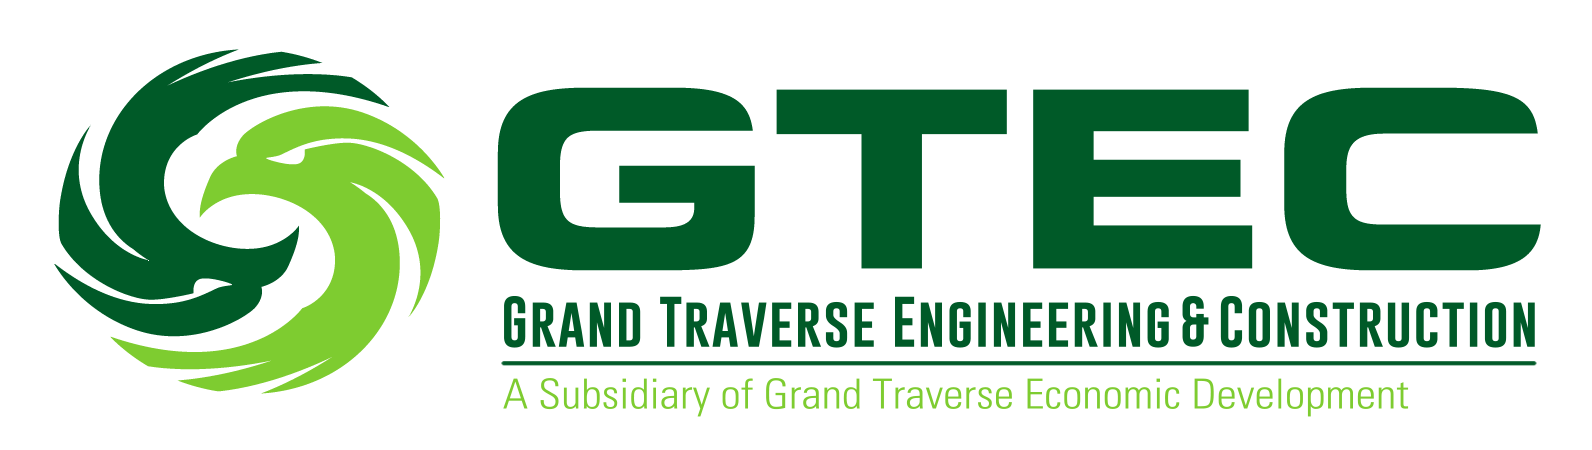 Grand Traverse Engineering & Construction